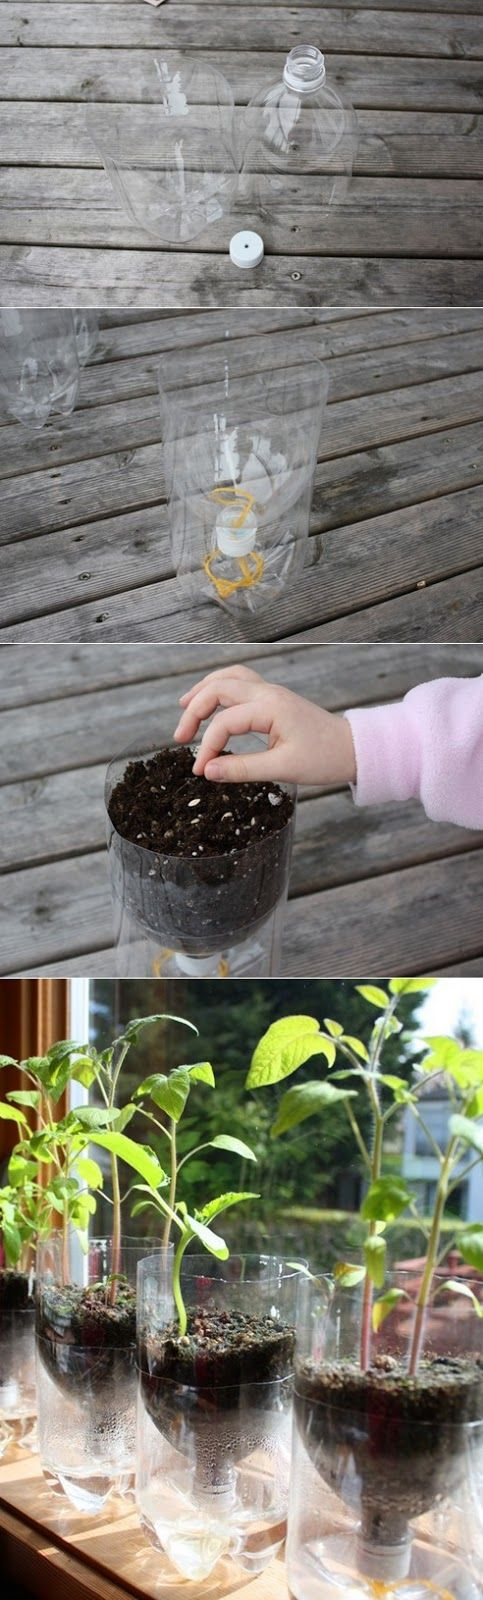 re-used/upcycle plastic bottles---Self Watering Containers by Alternative Energy and Gardening. Great tip!